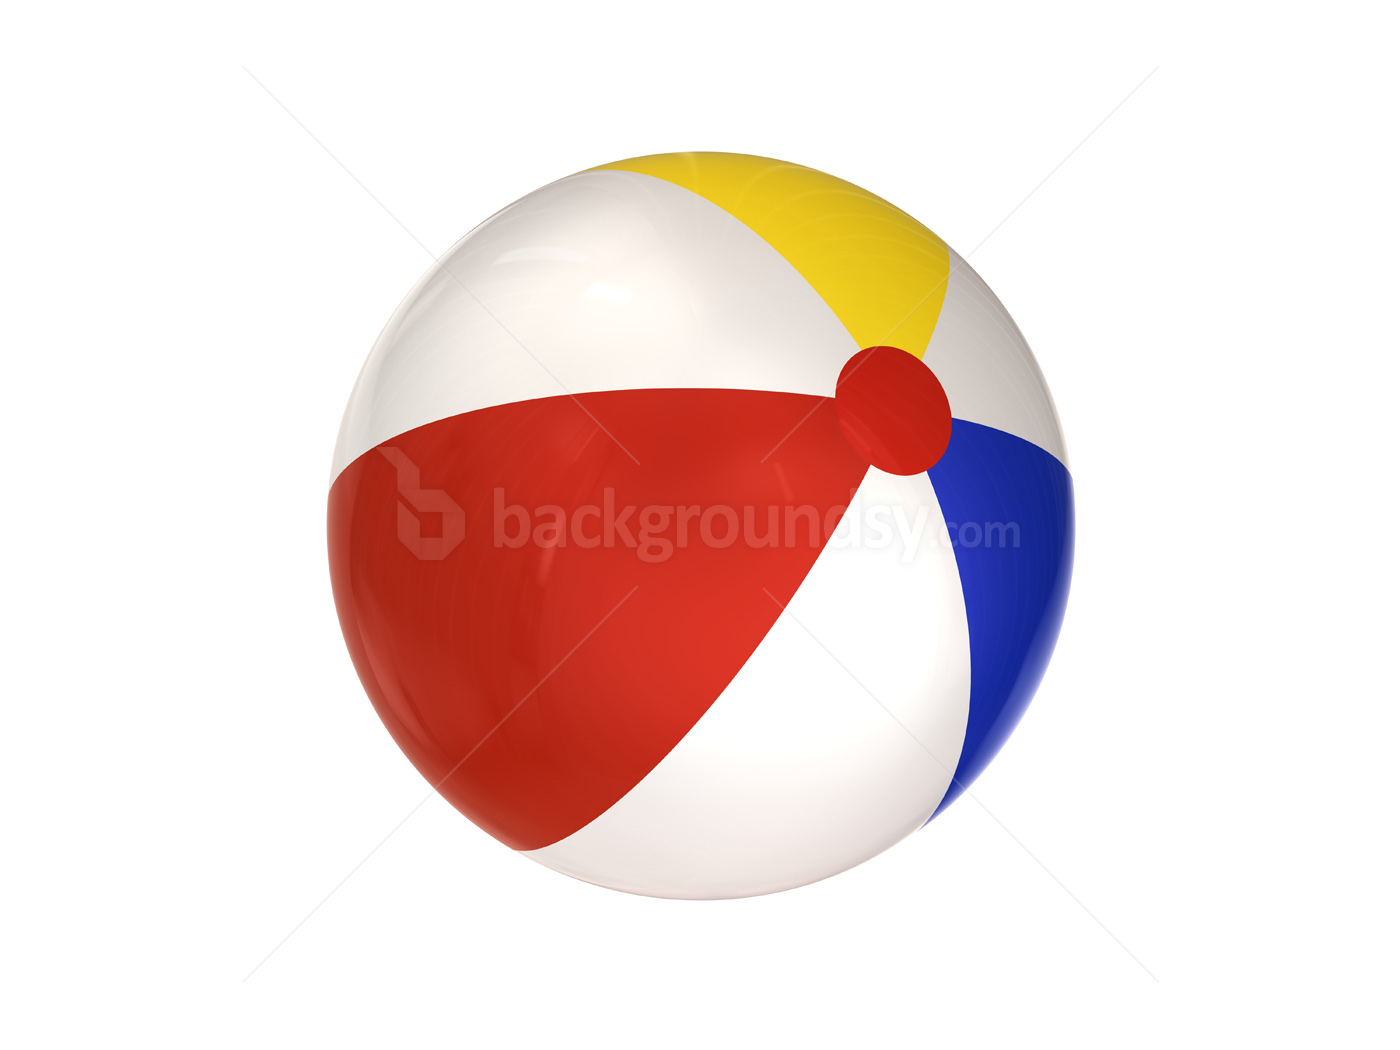 Beach backgroundsy com. Beachball clipart plastic ball